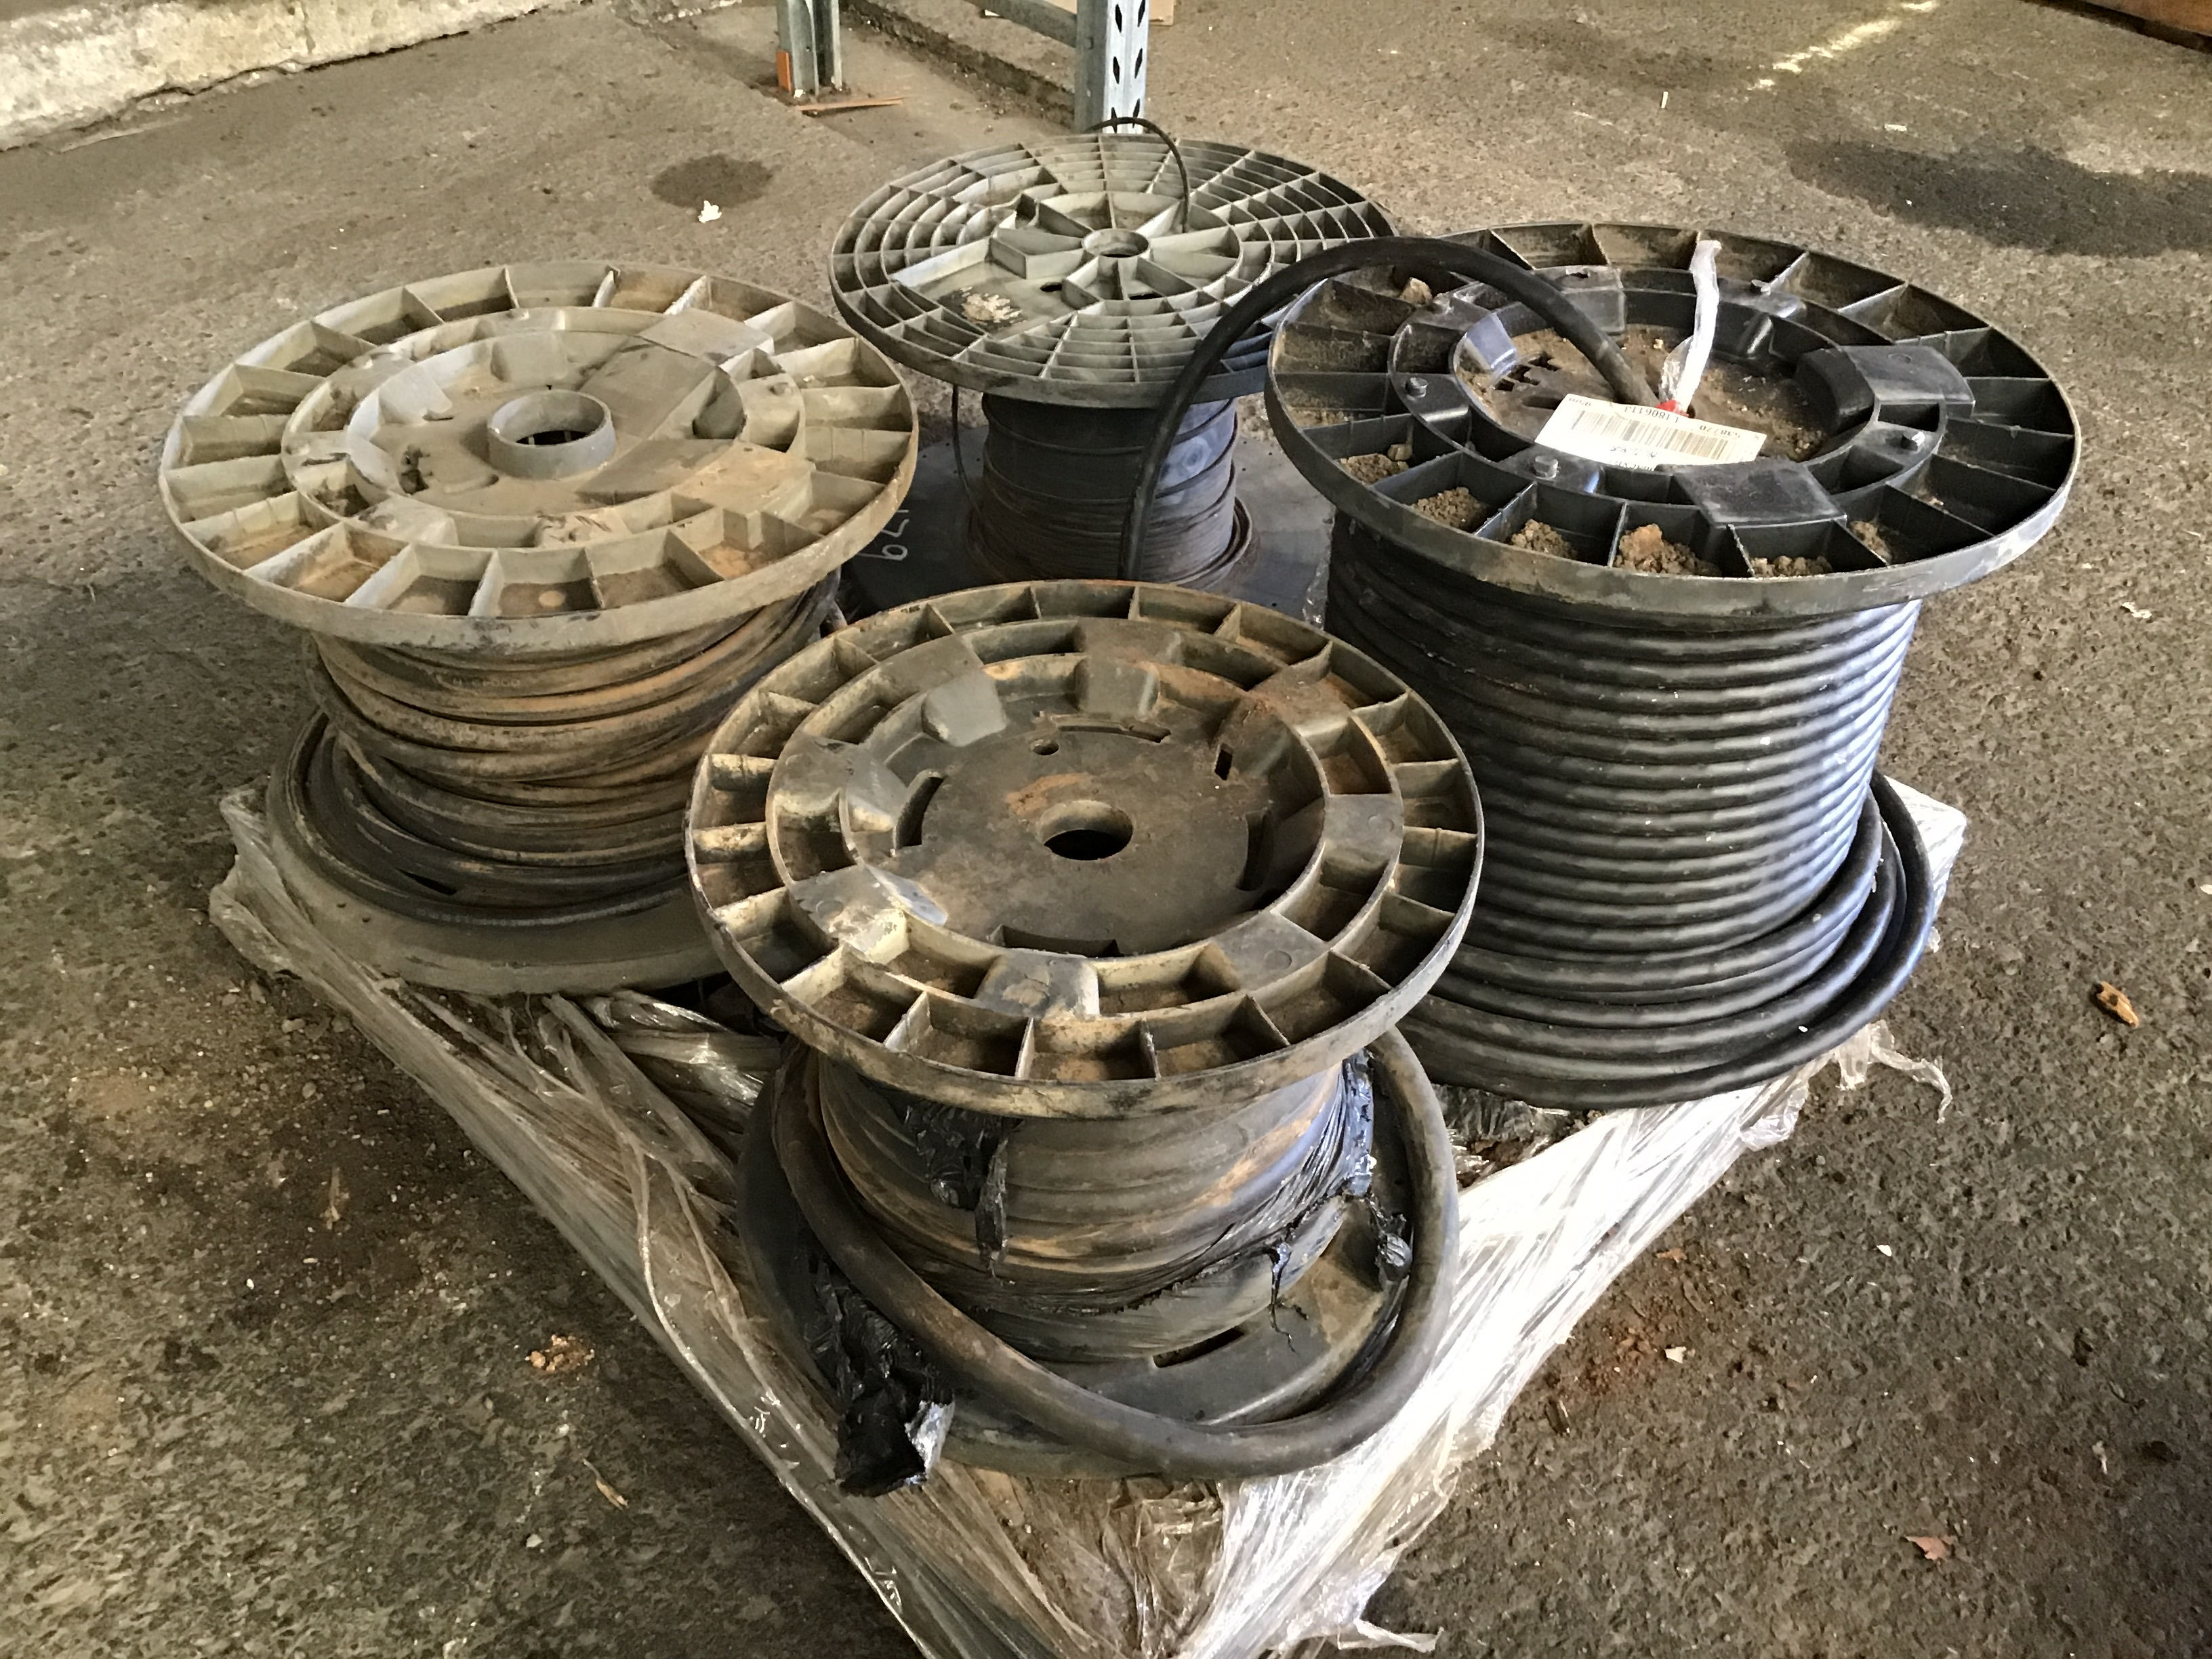 4x Part Reels of Electrical Cabling